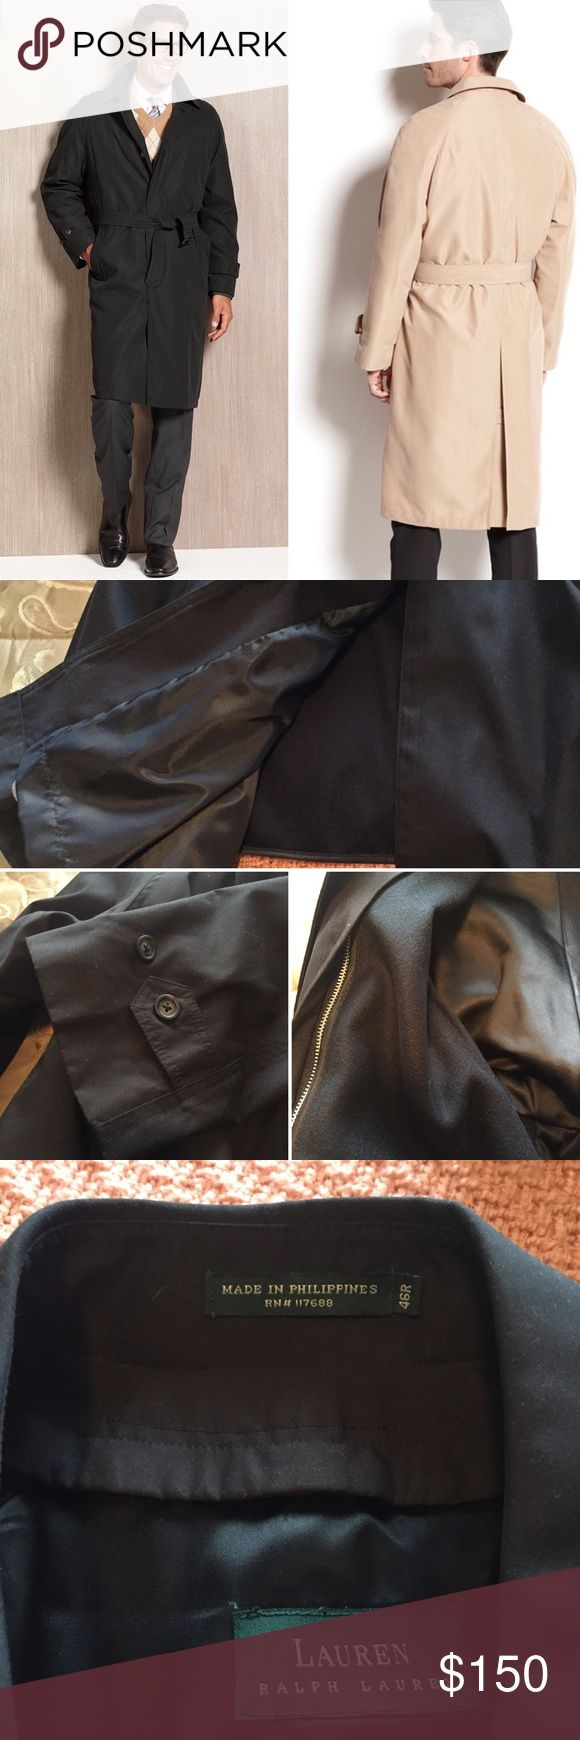 "Men's Ralph Lauren Dress Raincoat This raincoat is like new! My husband has maybe worn it twice. Retails for $450 at Macy's.   Actual coat is black, cover photo is exact coat pictured in black and khaki.   Has pockets, a removable quilted liner, and comes with a belt. Size 46R, 45"" in length. Comes right at, or a little past the knees.   Brand: Ralph Lauren Name: Sidney Shell: 100% Polyester Lower: 50% Wool - 50% Polyester  ✅reasonable offers ❌trades 💬ask questions 🛍bundle to save…"